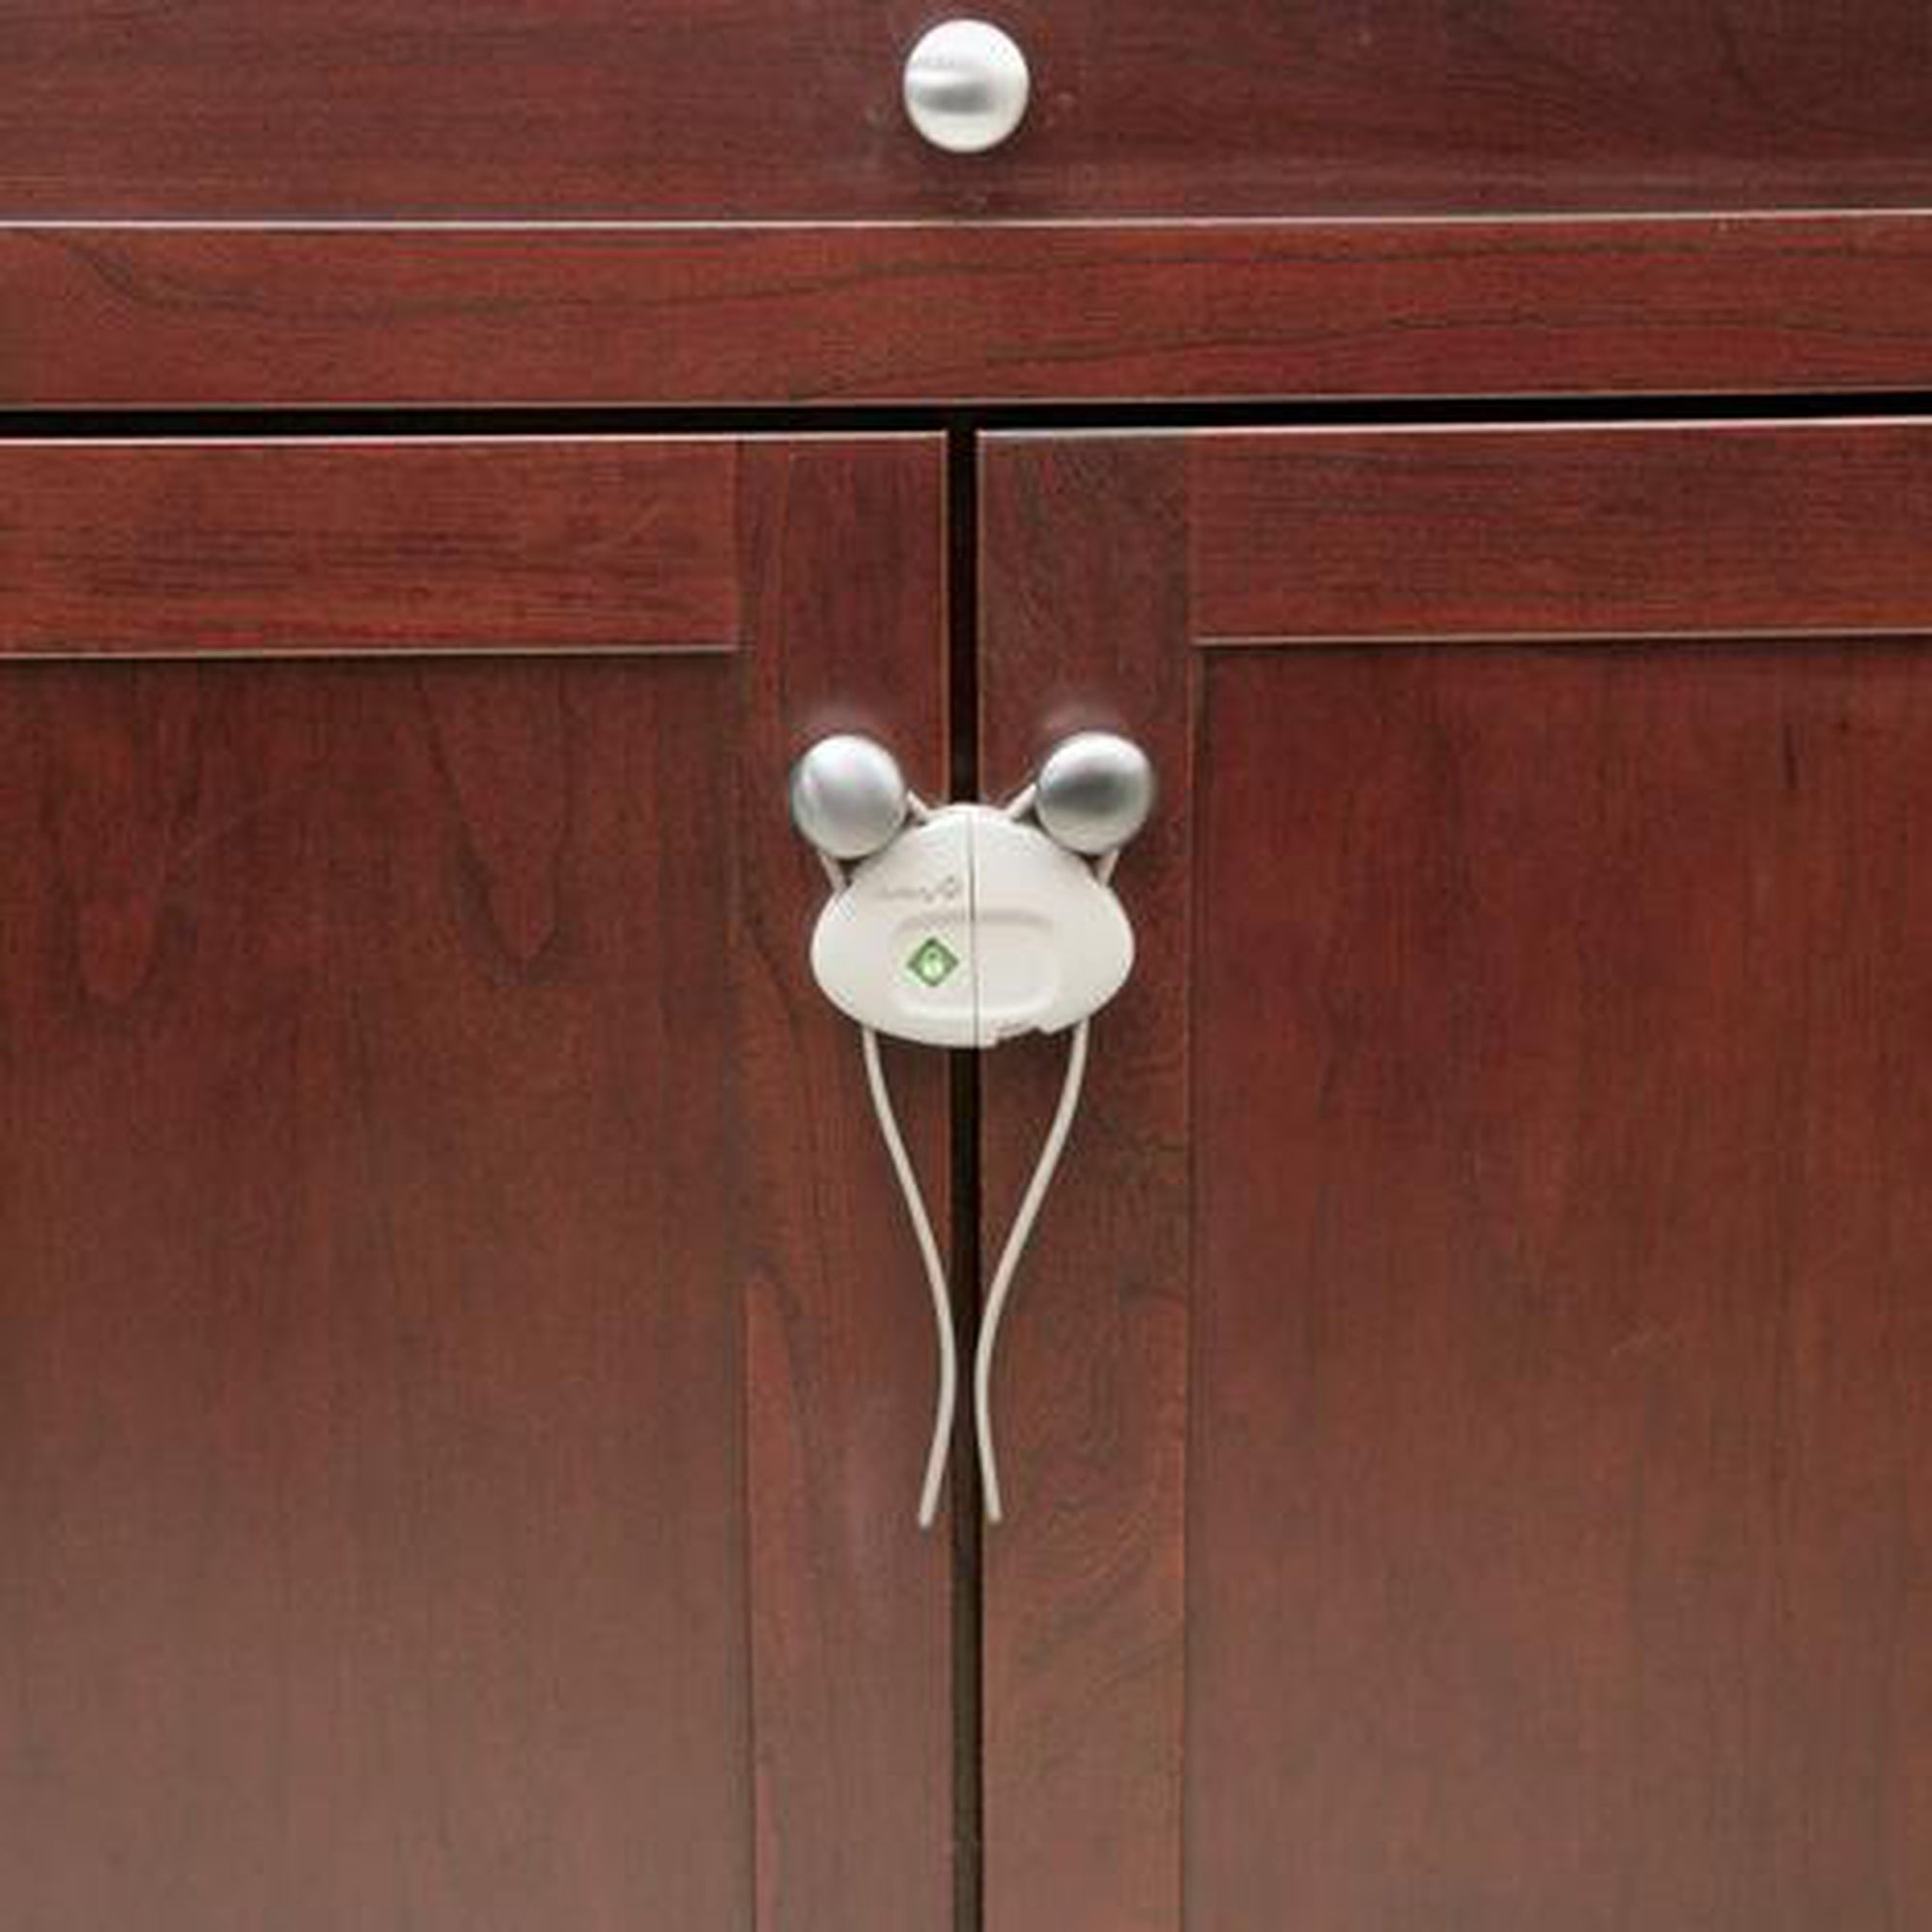 Safety 1st Handle Flex Lock-Childproofing-Mother and Baby Shop Kenya's #1 Online Baby Shop